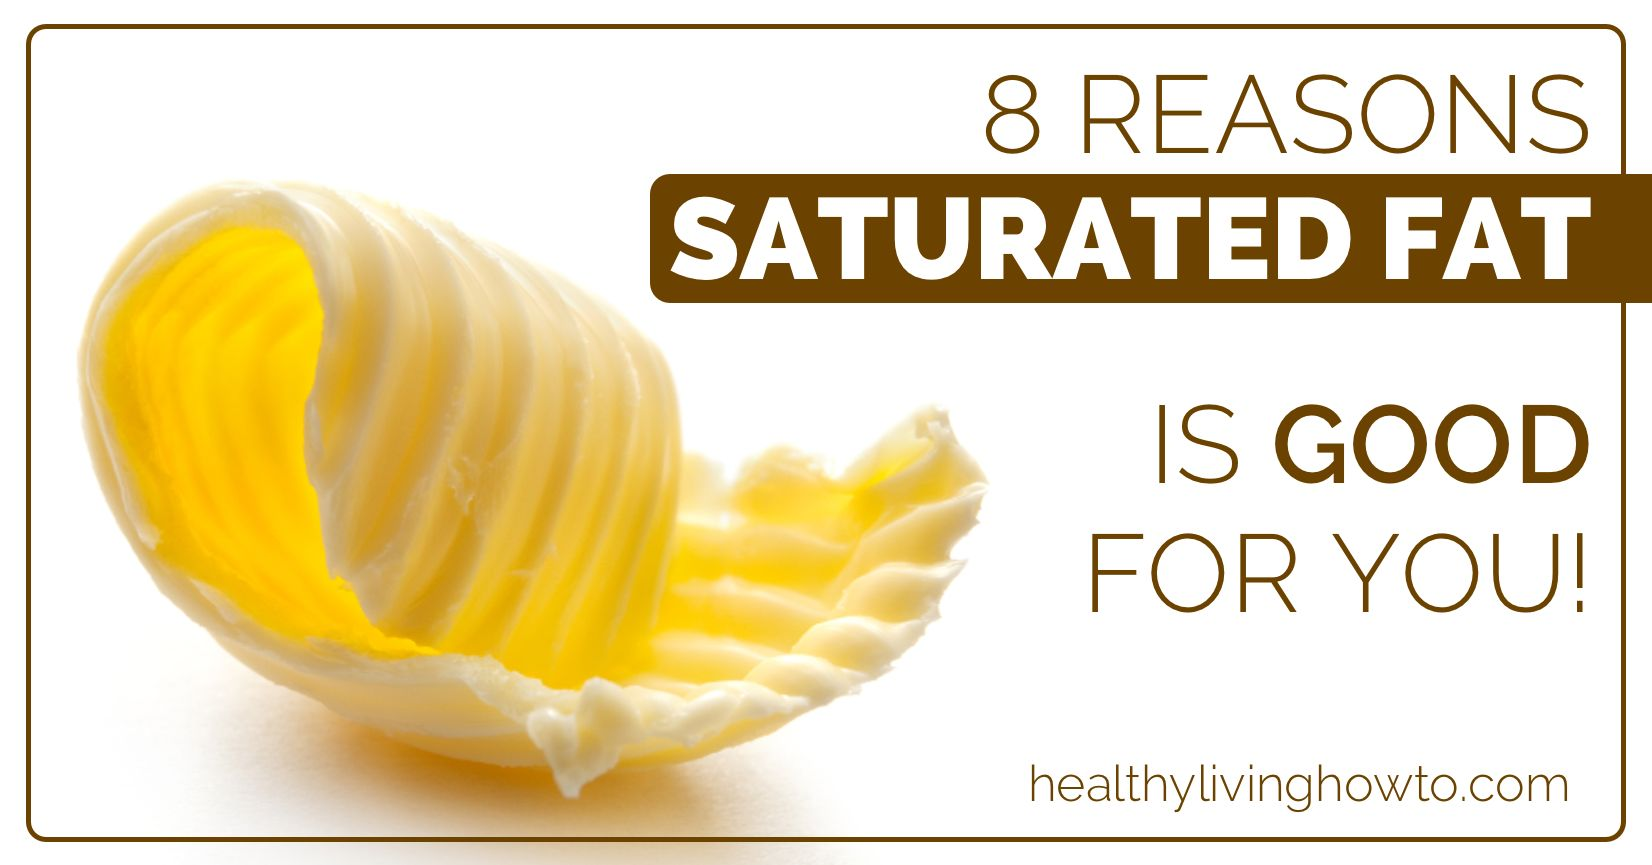 8-Reasons-Saturated-Fat-Is-Good-For-You-healthylivinghowto.com-2